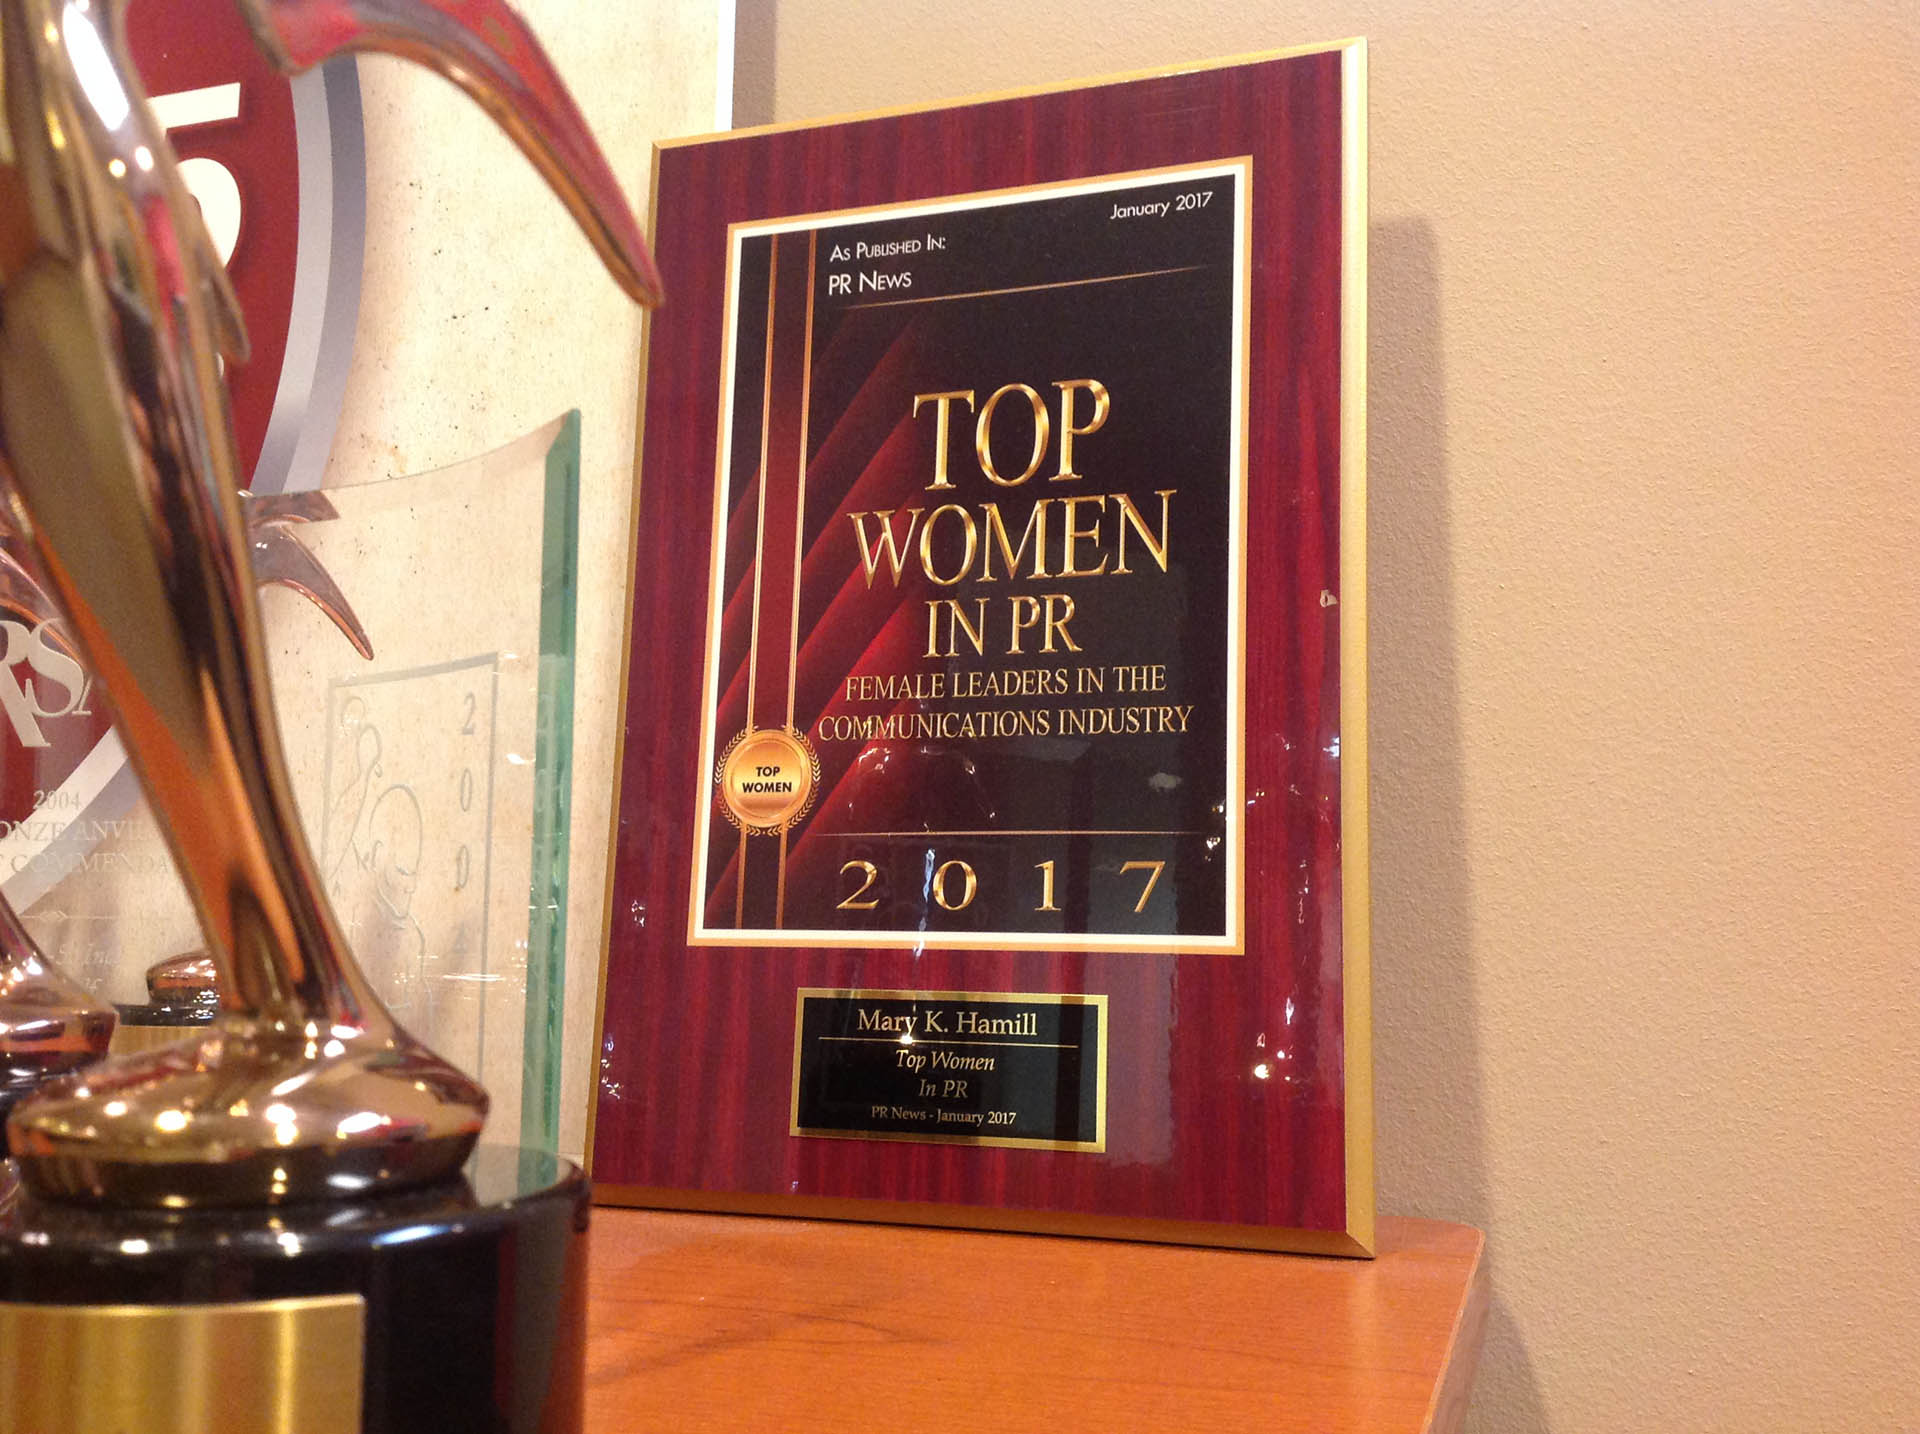 Global-5 Communications CEO Mary Hamill Wins Top Women in PR Award